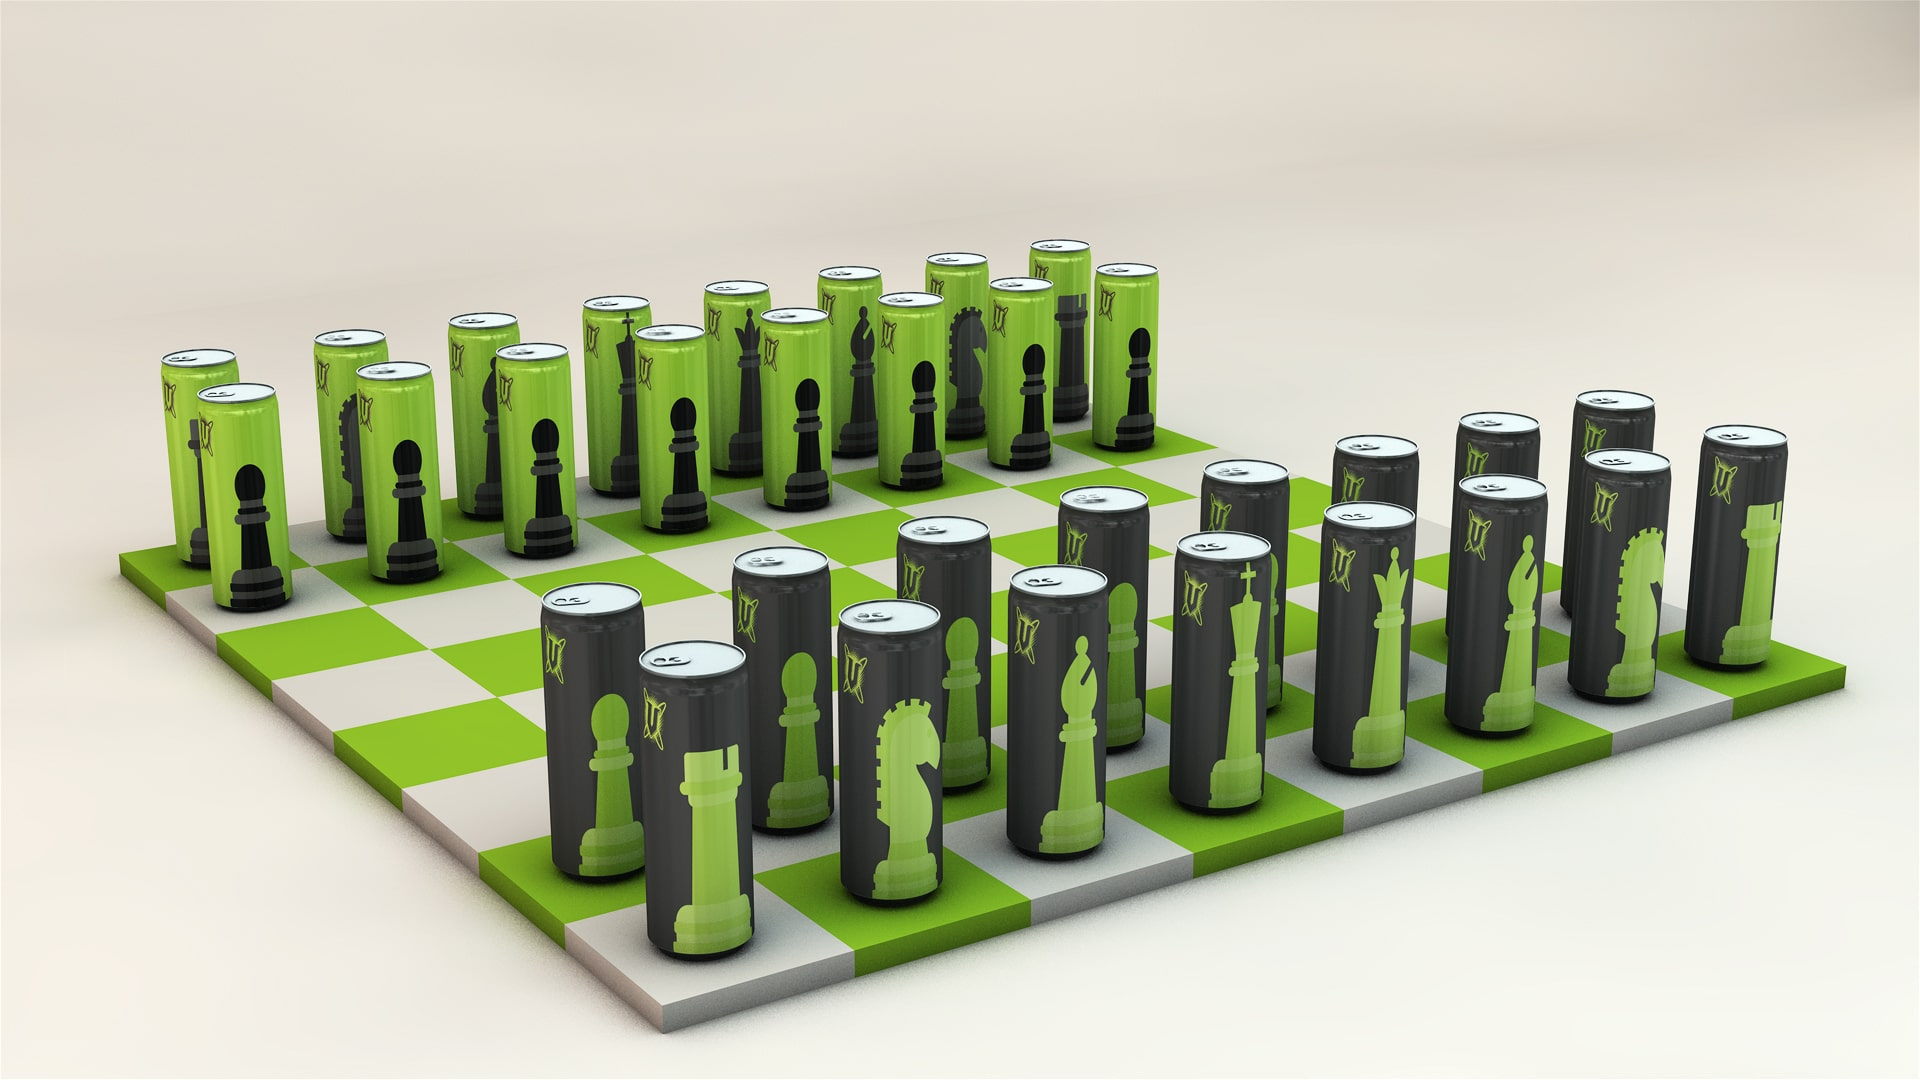 V_Can_Pawn_Chessboard-min.jpg